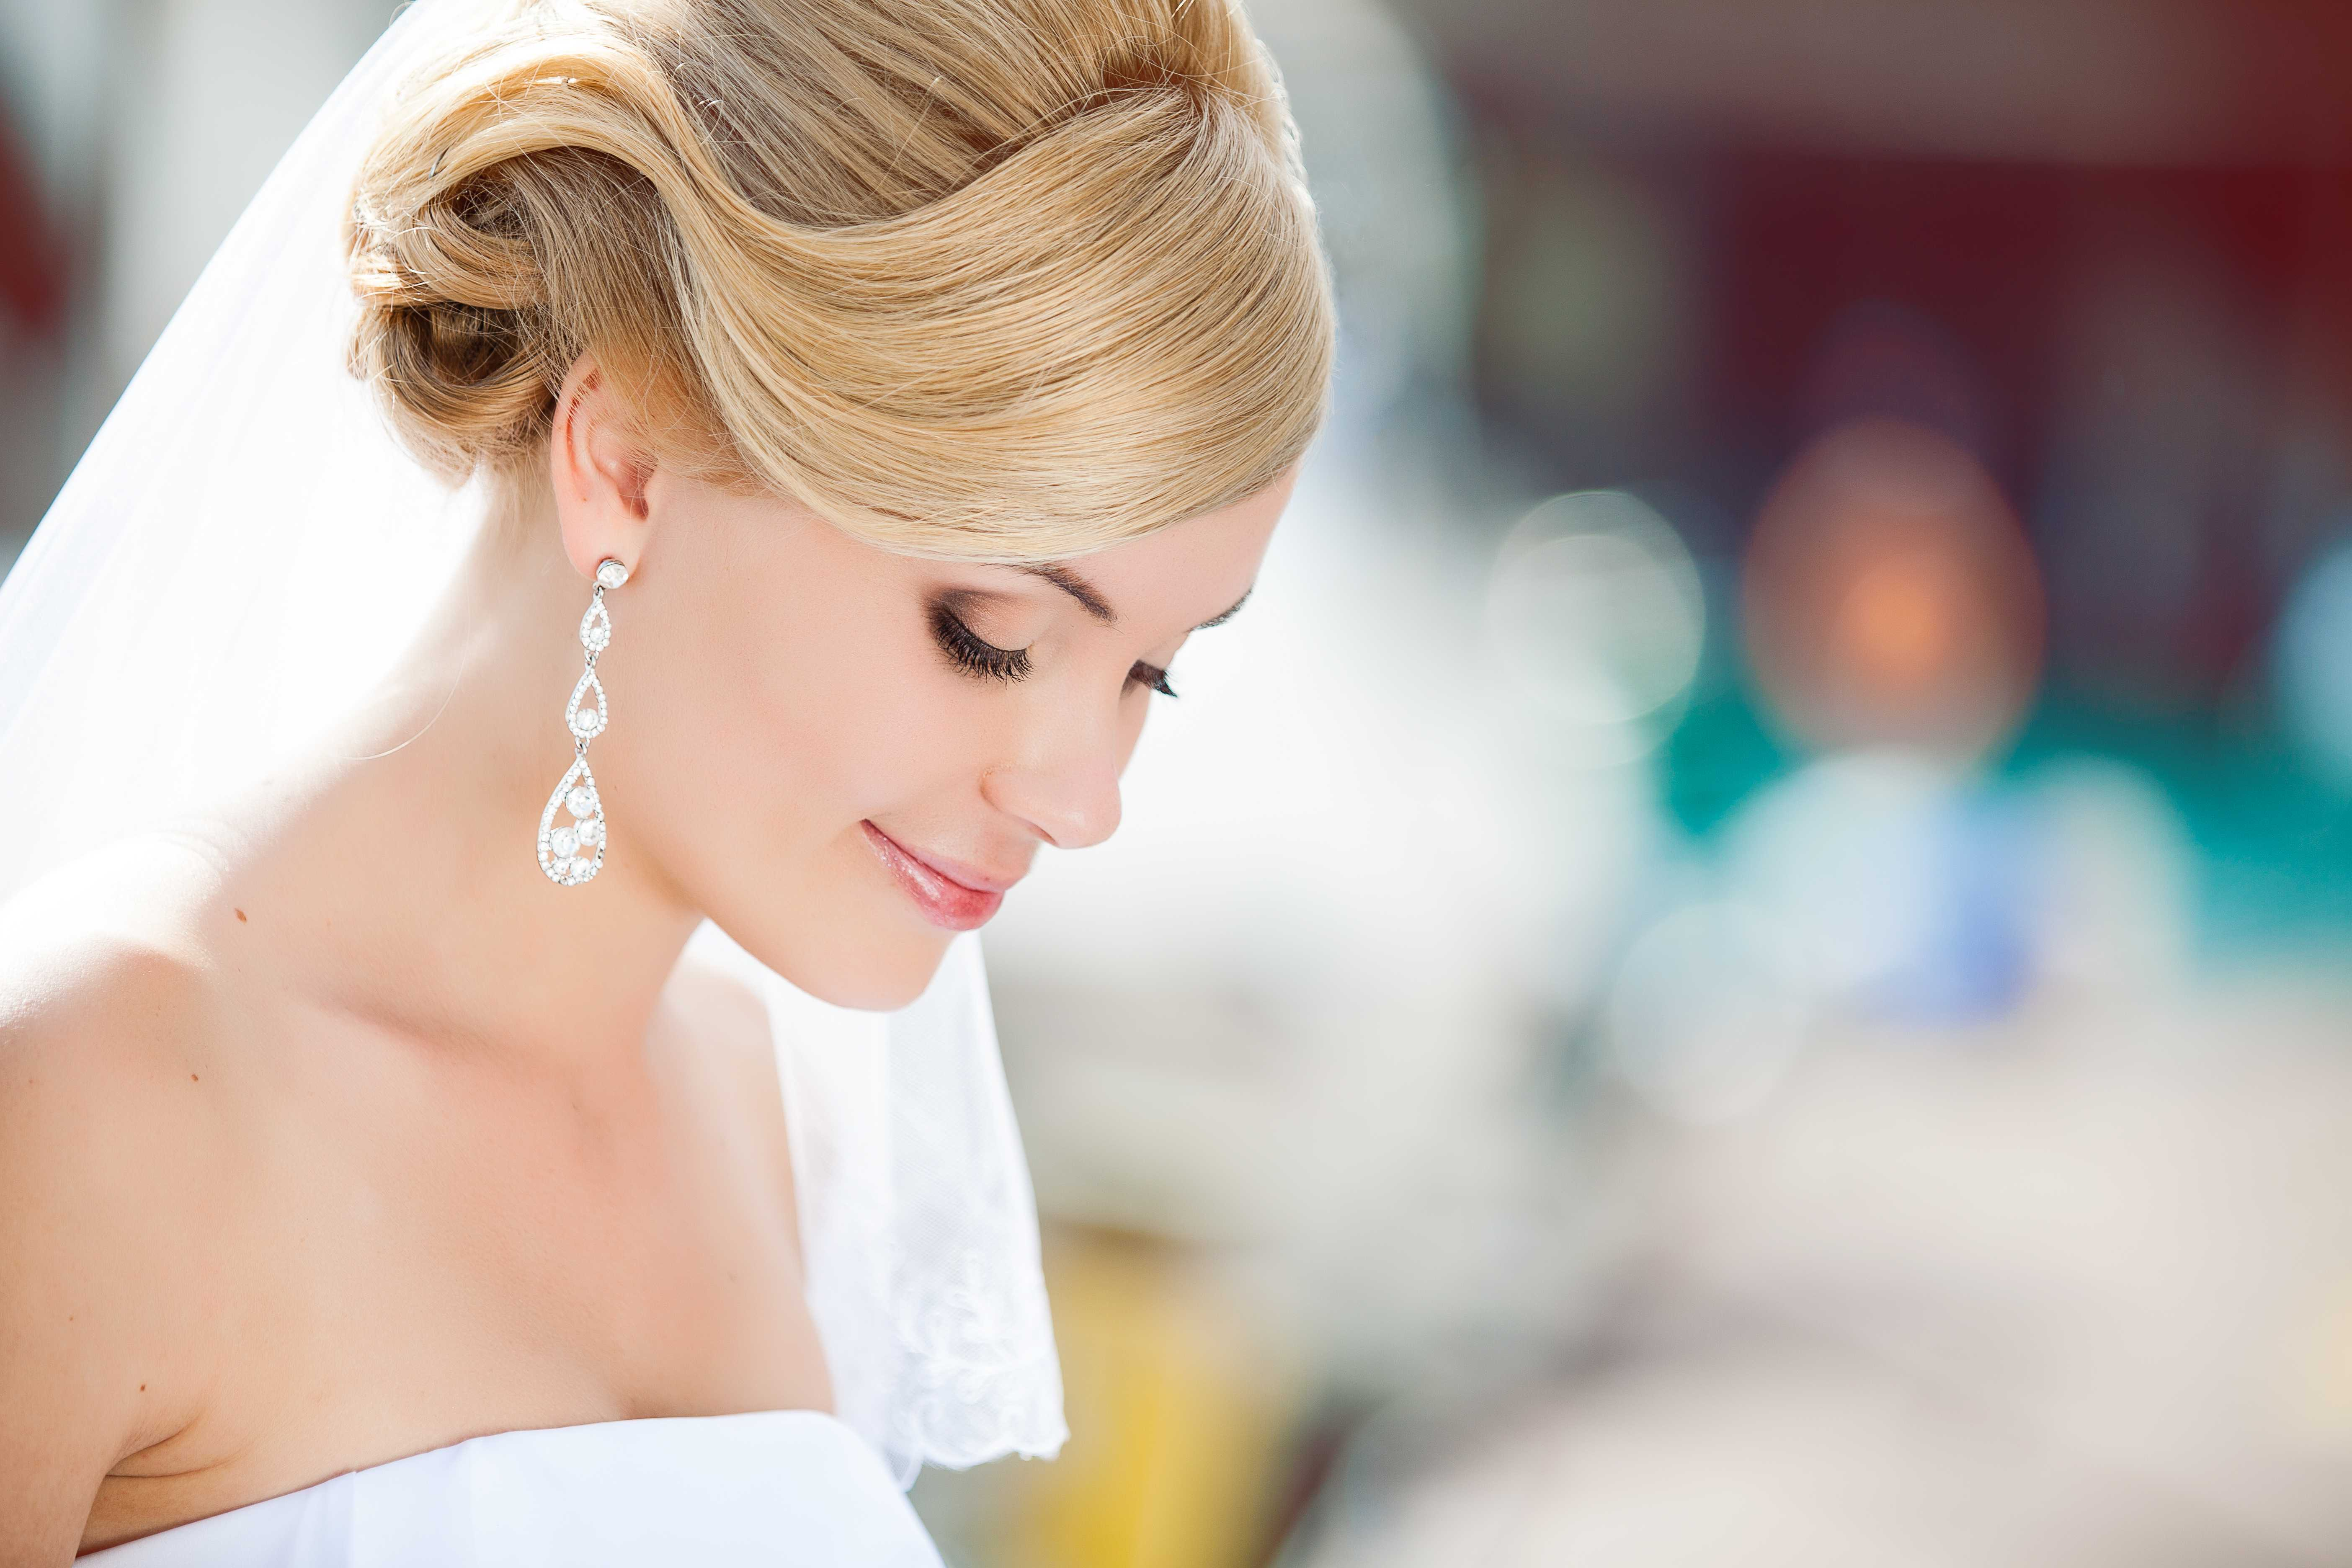 4 Ways to Look Your Best on Your Wedding Day